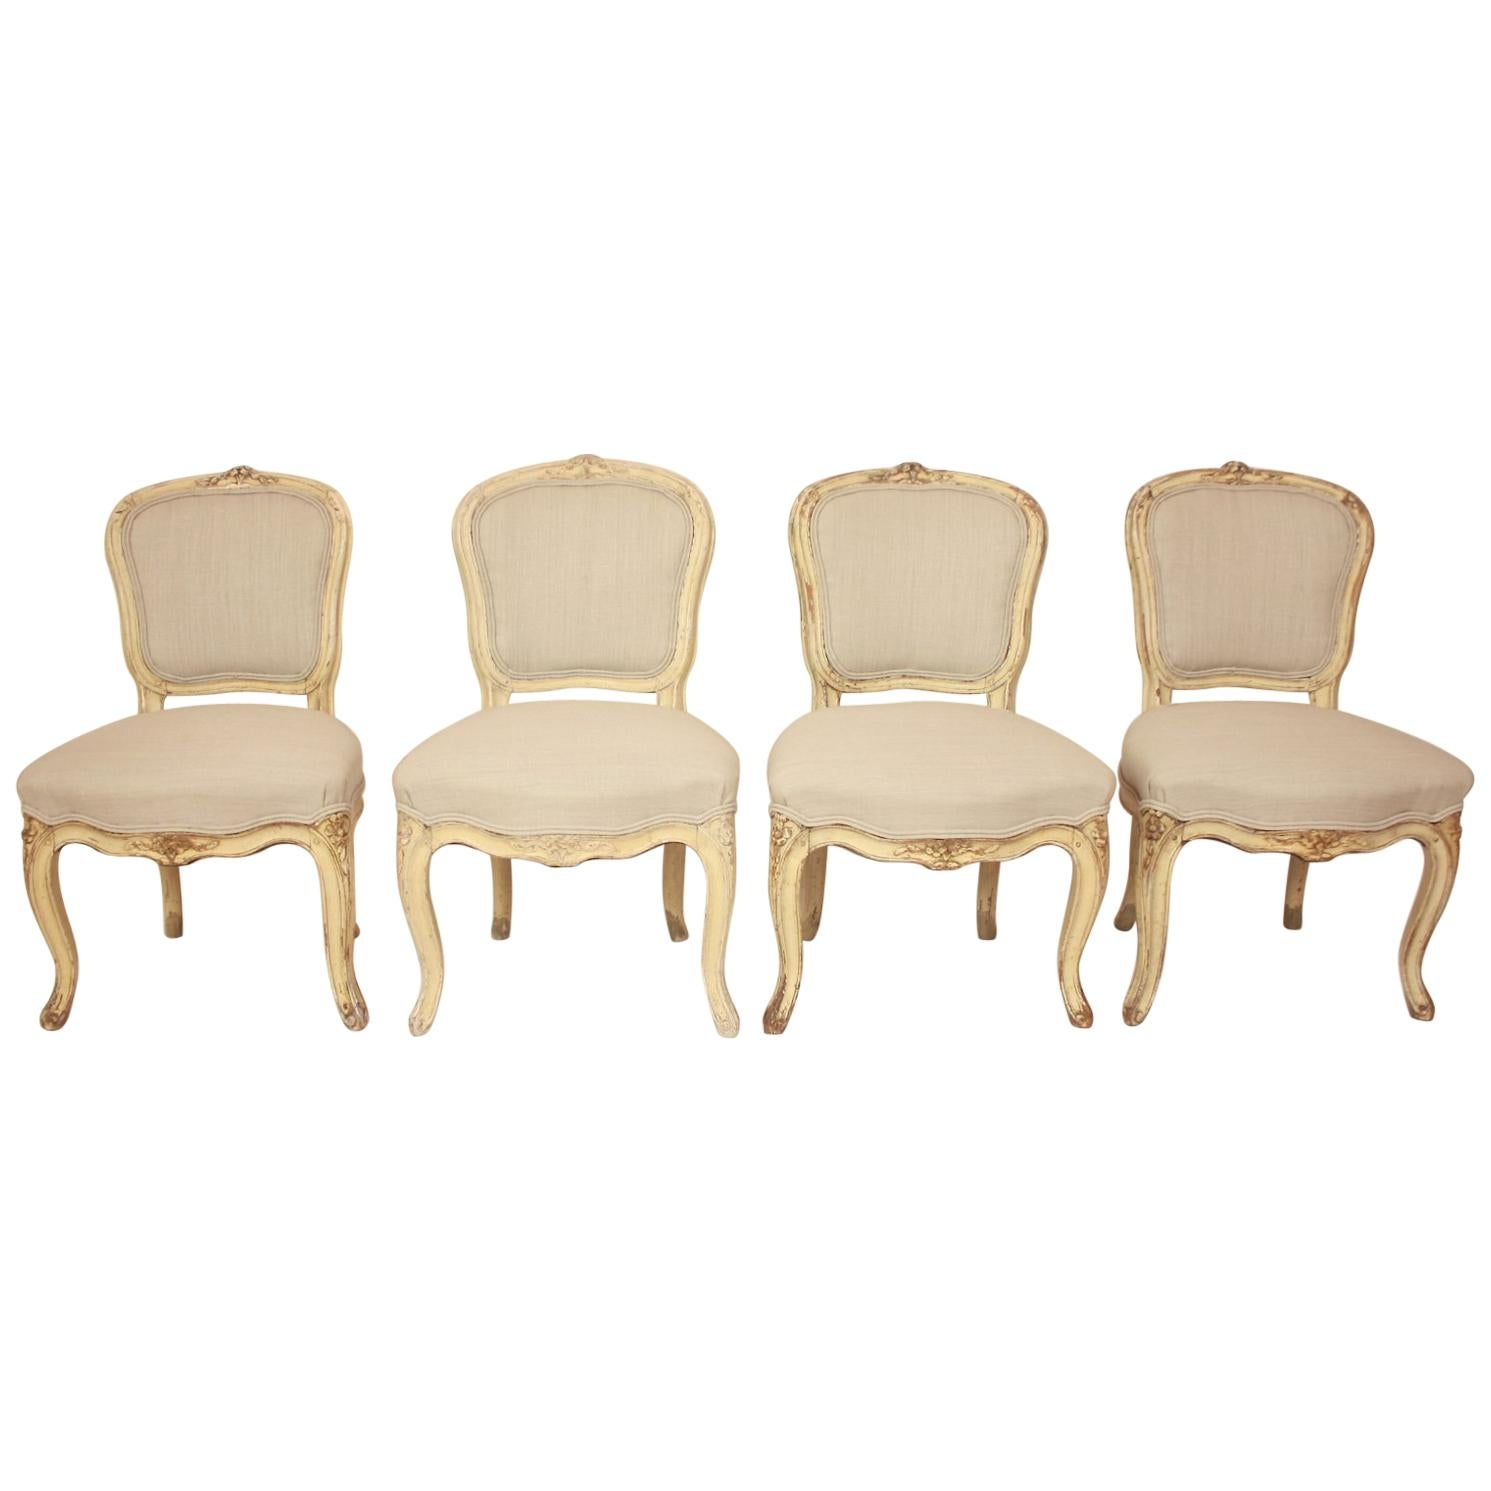 Set of 4 18th Century Painted Louis XV Side Chairs, Attributed to J.B. Mouette